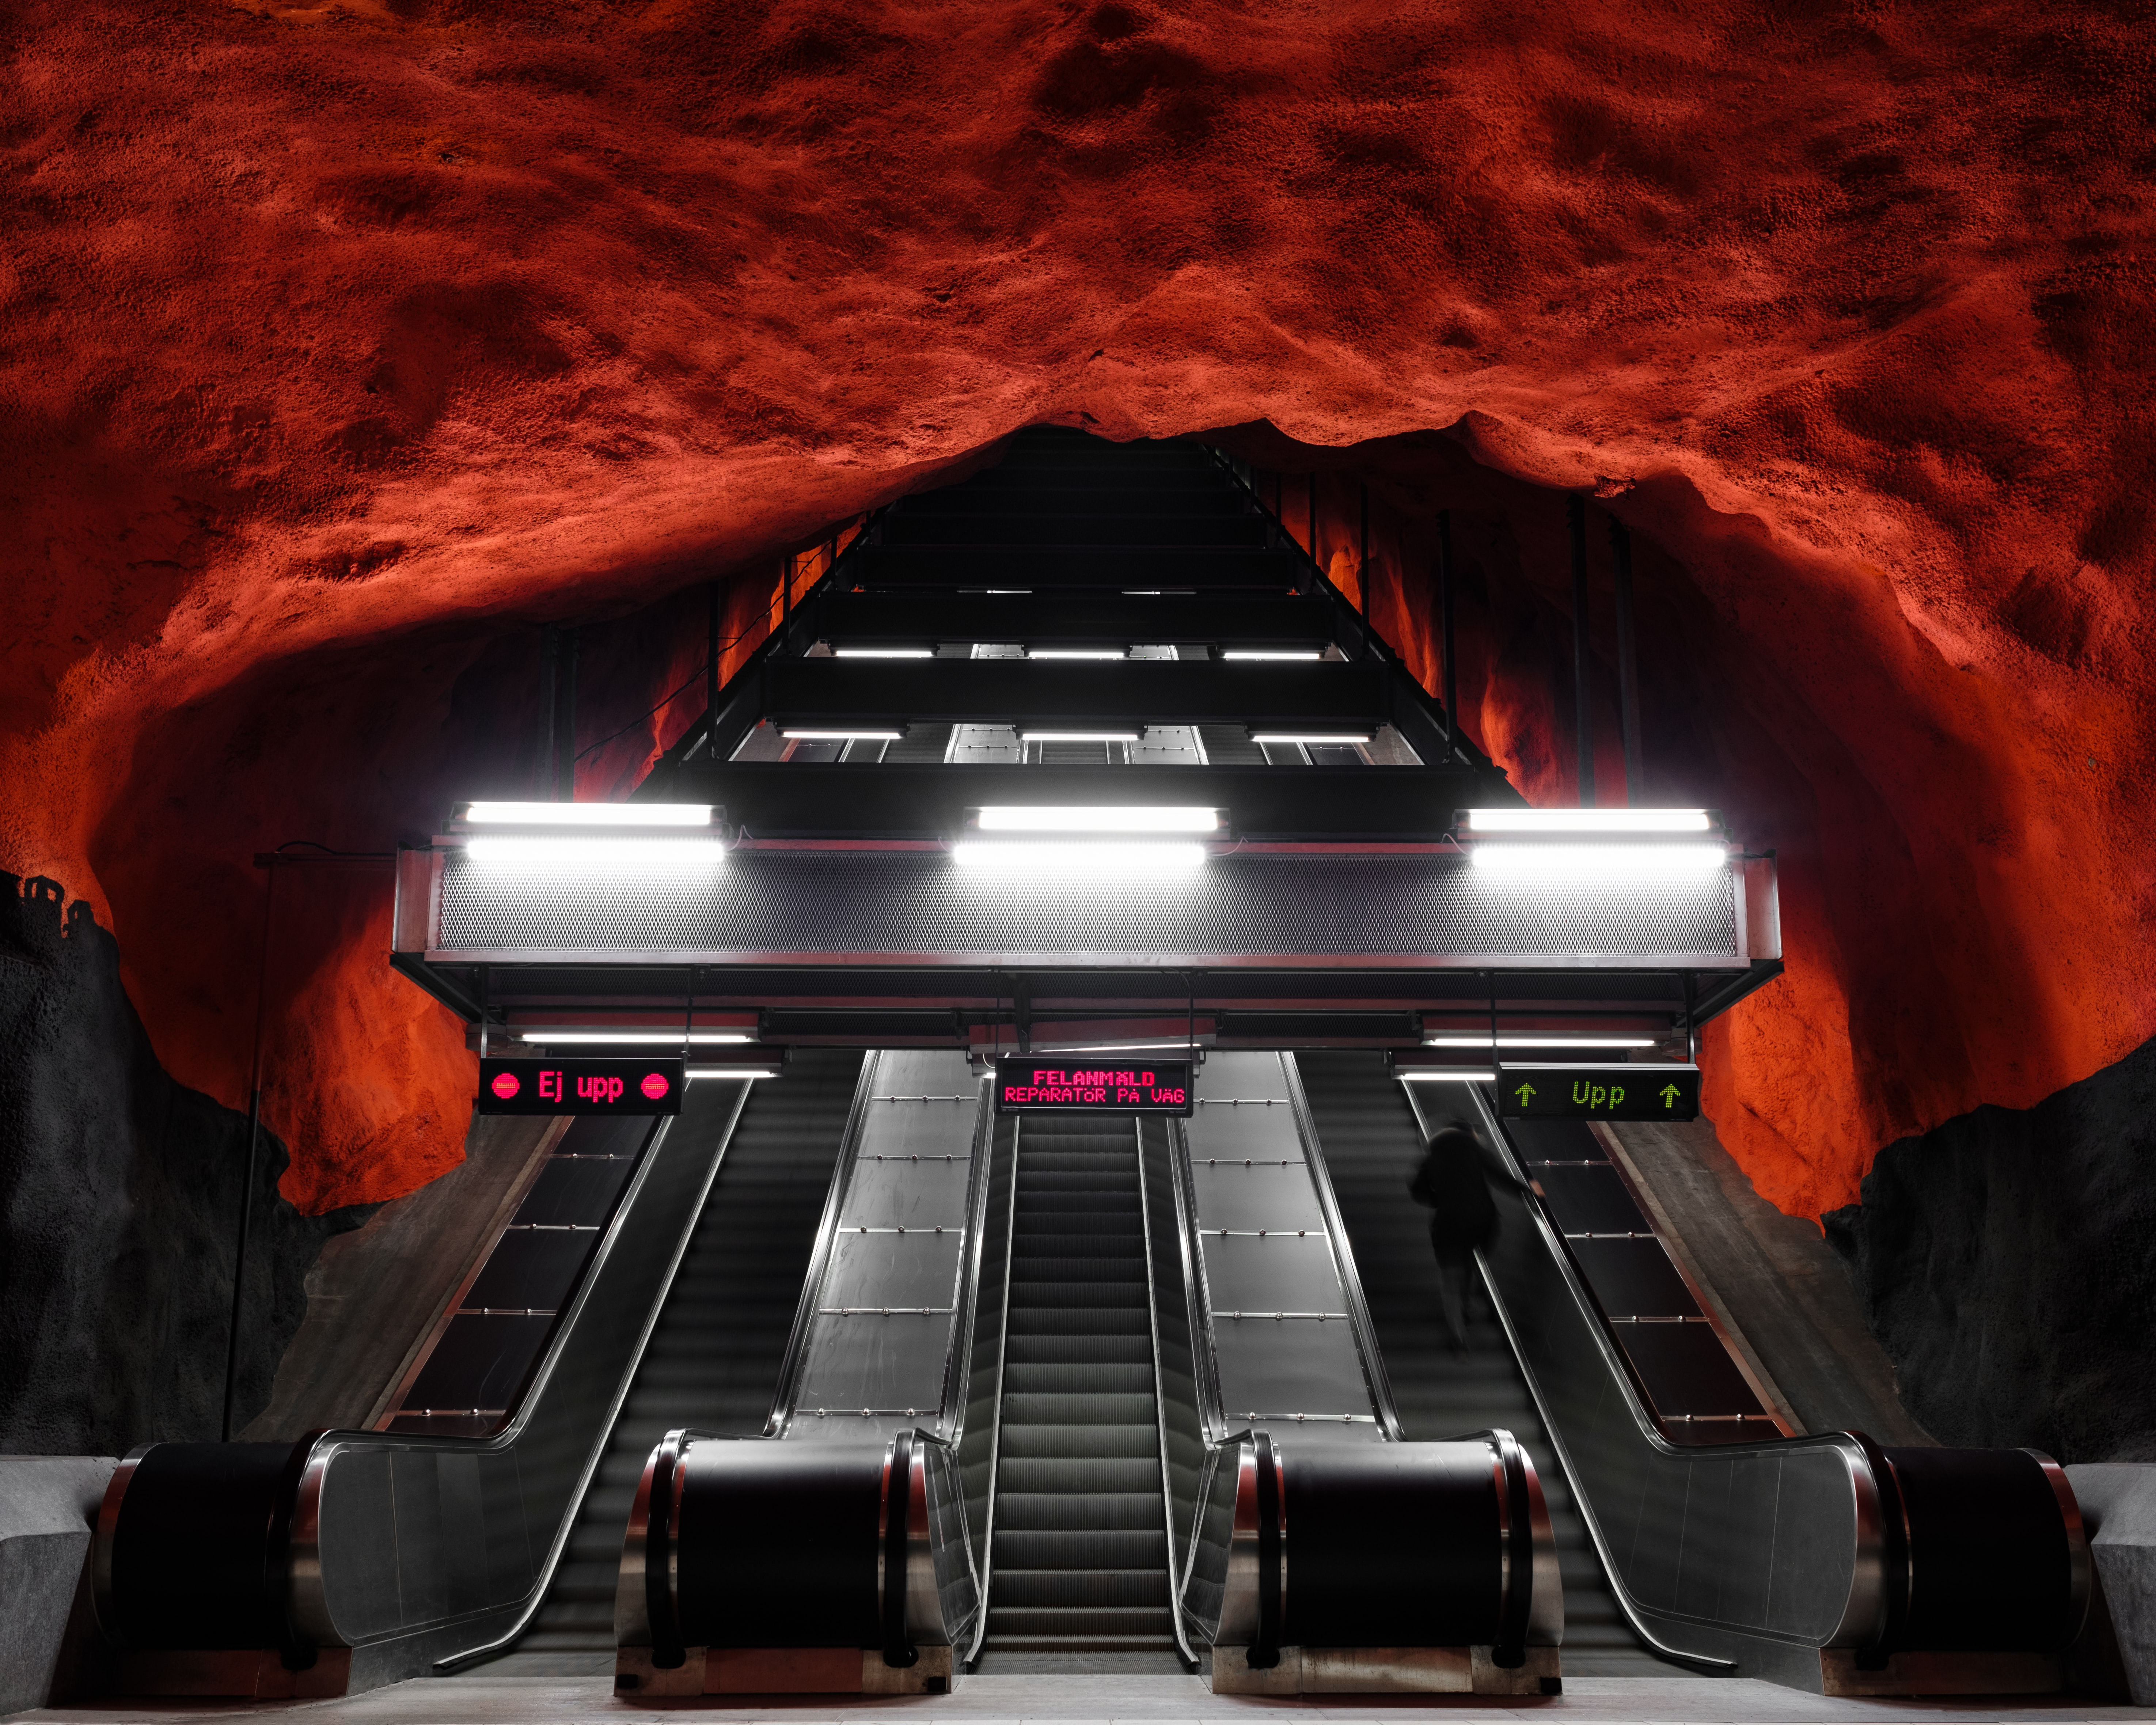 Bottom view of escalator in underground metro station underneath red rock ceiling